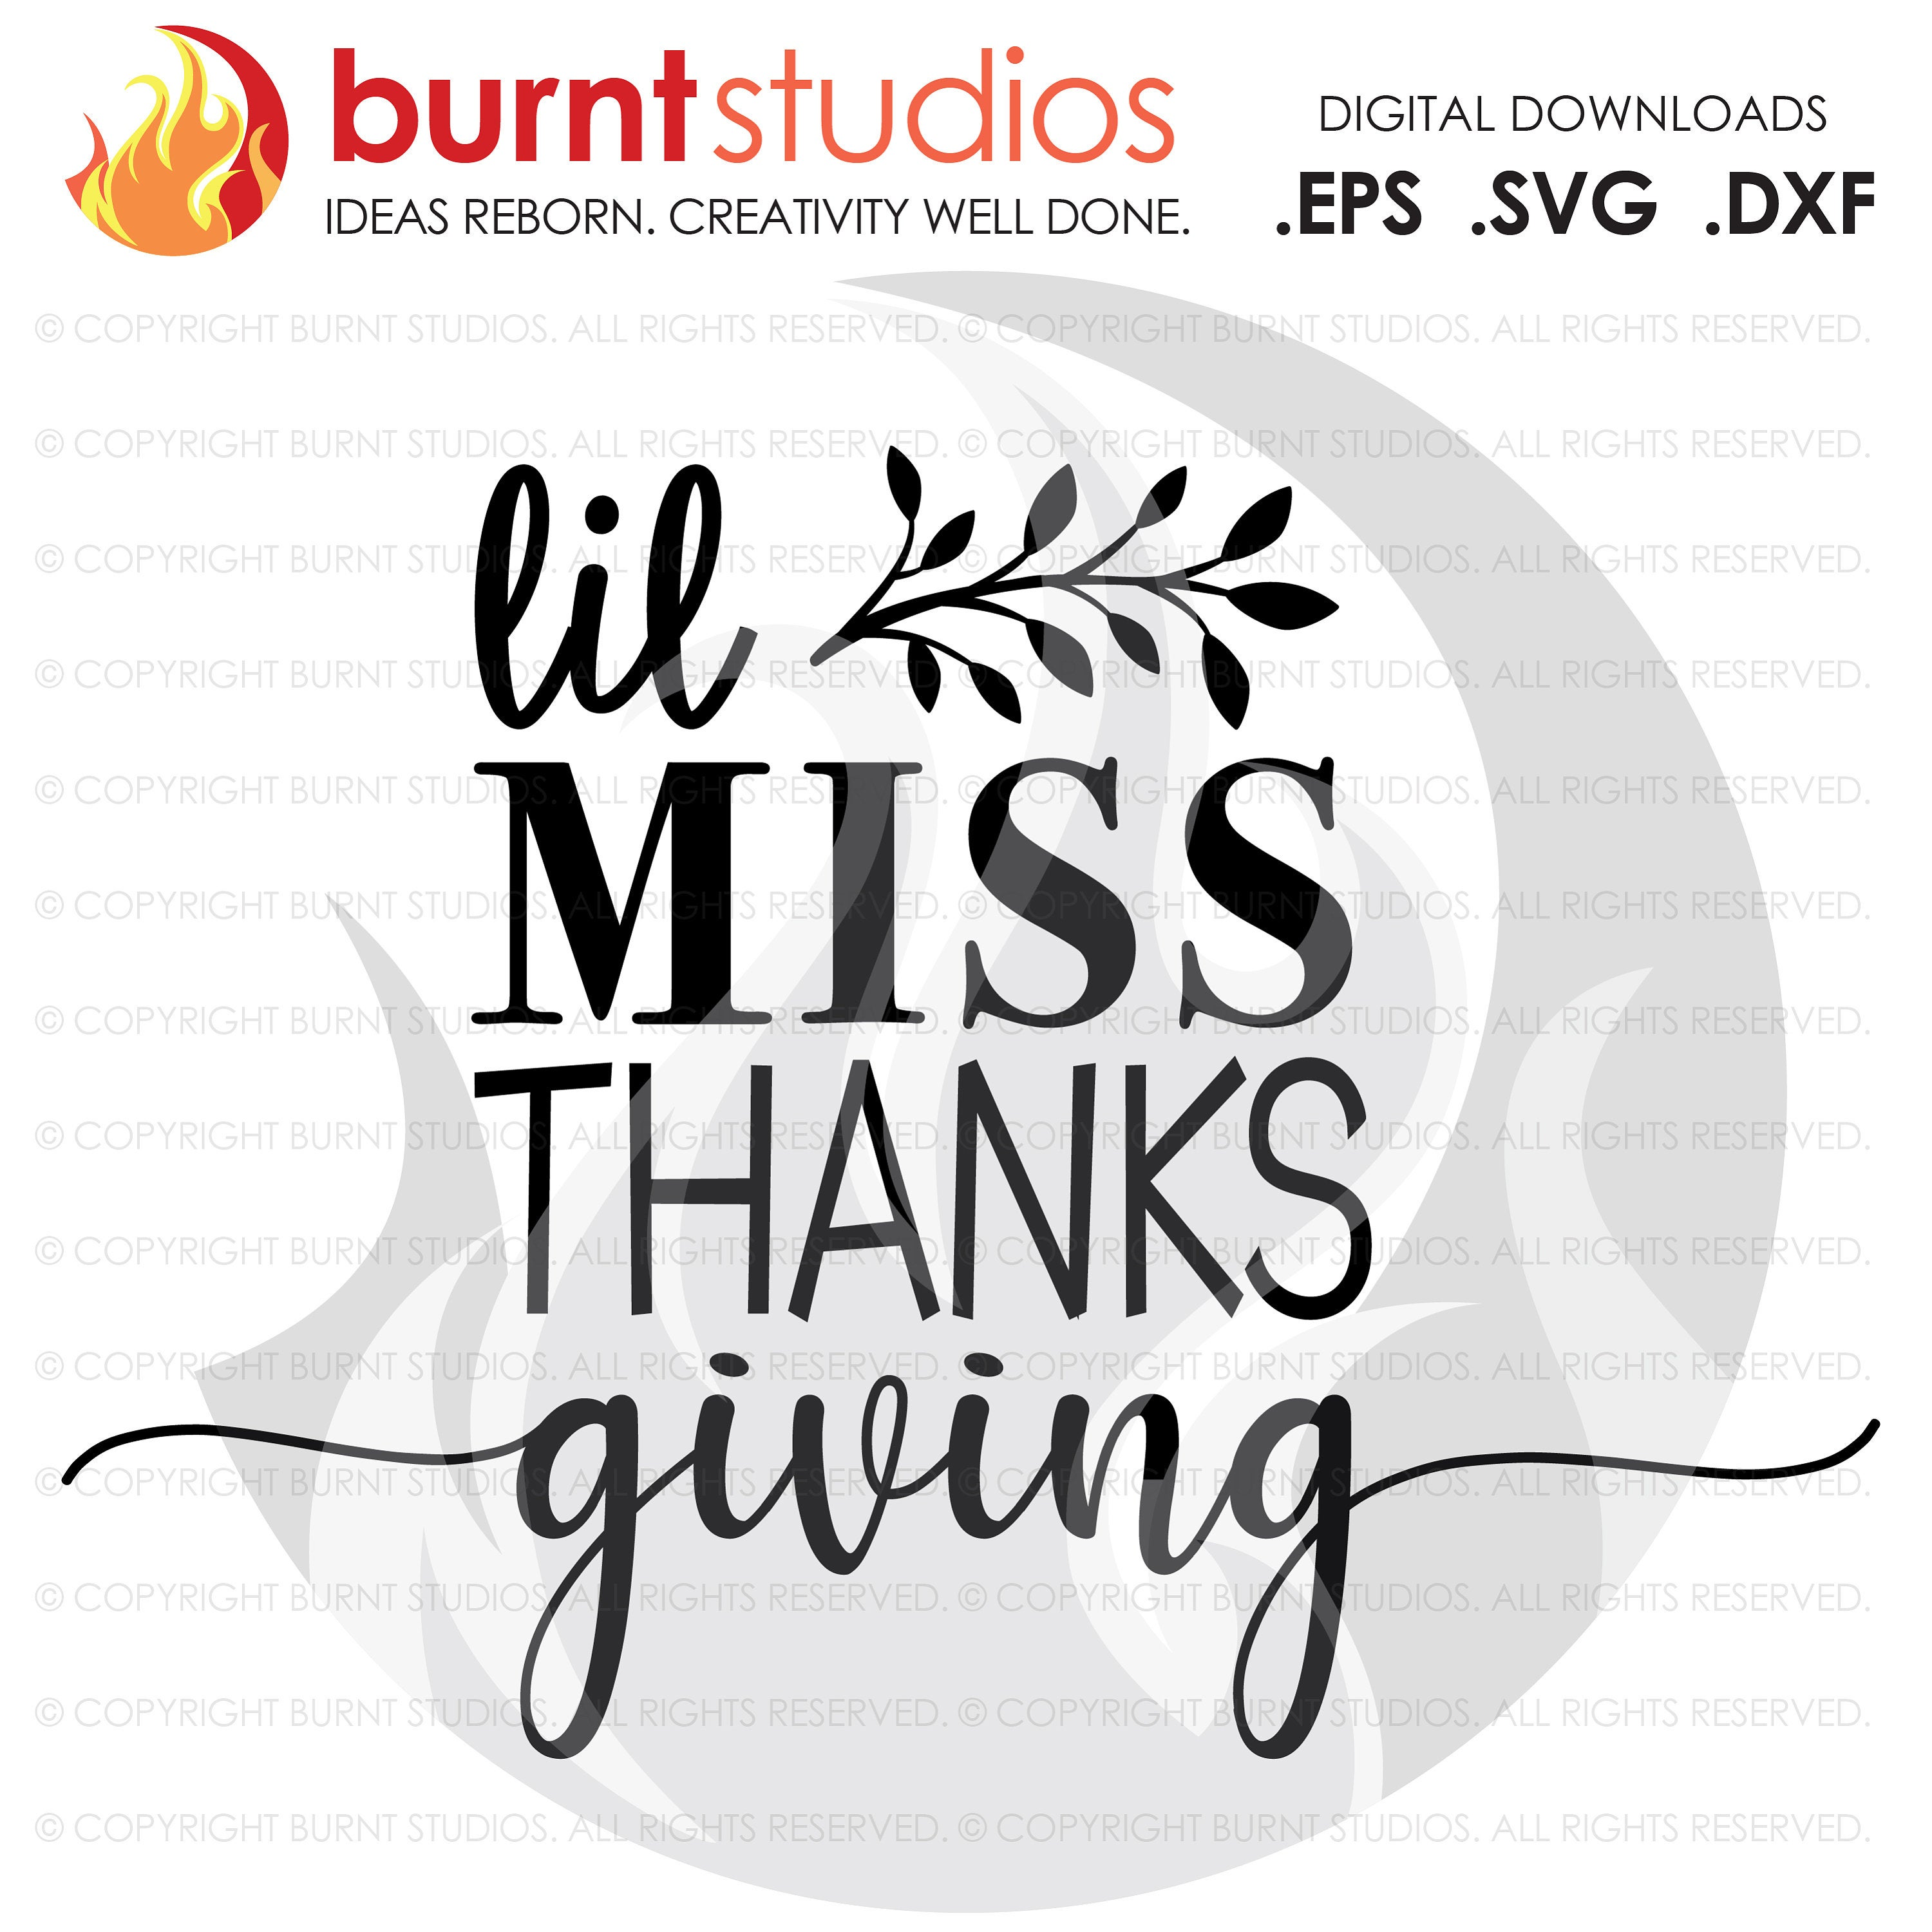 Lil Miss Thanks Giving Little Miss Thanksgiving Svg Cutting File Thankful Oh Snap Wishbone Turkey Holiday Shirt Design Decal Design Burnt Studios